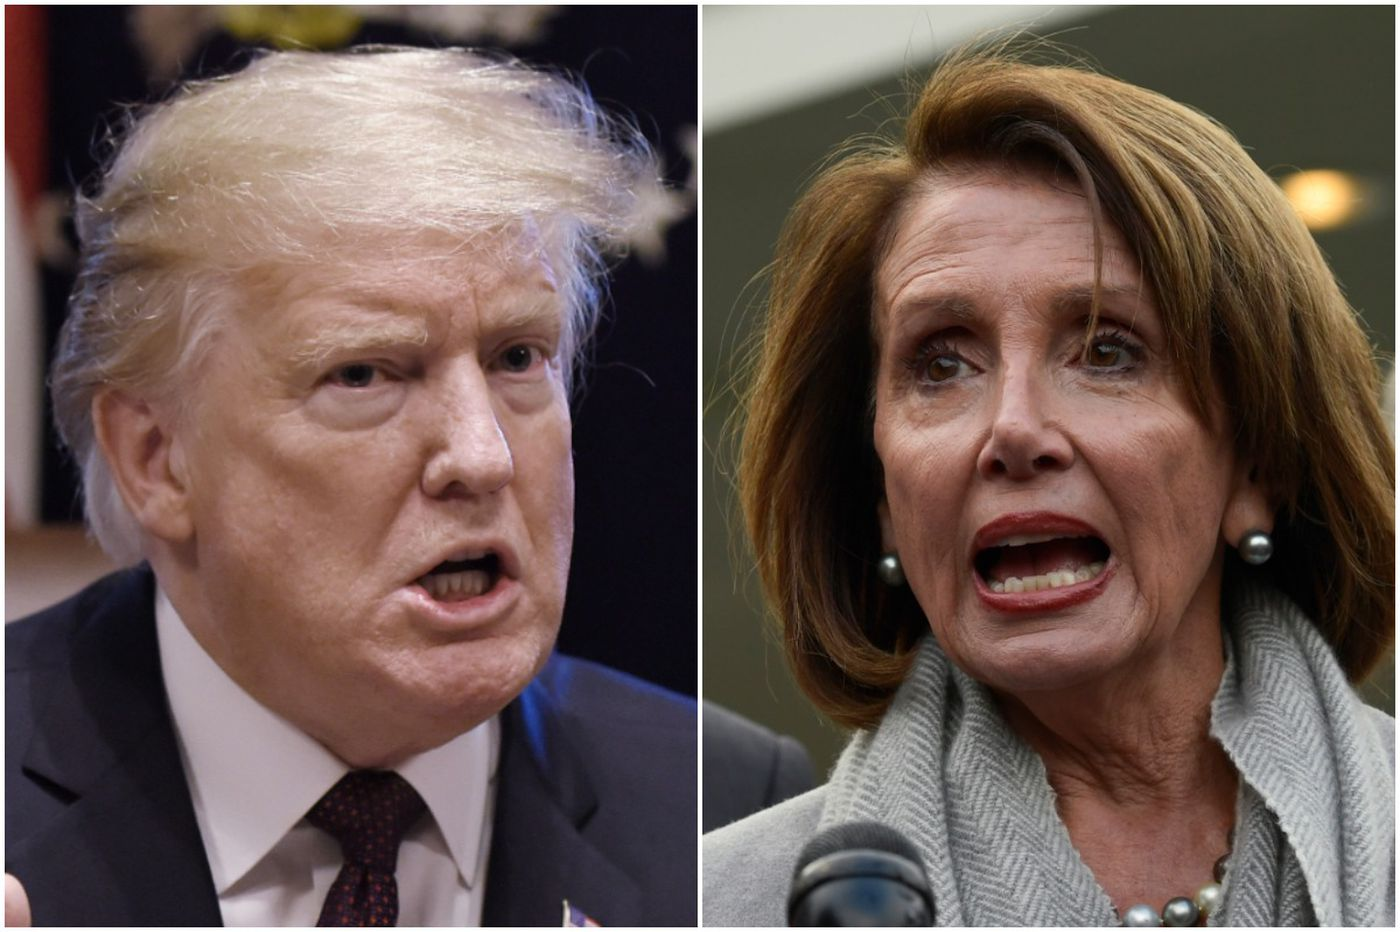 Trump concedes to Pelosi, won't deliver State of the Union until shutdown ends